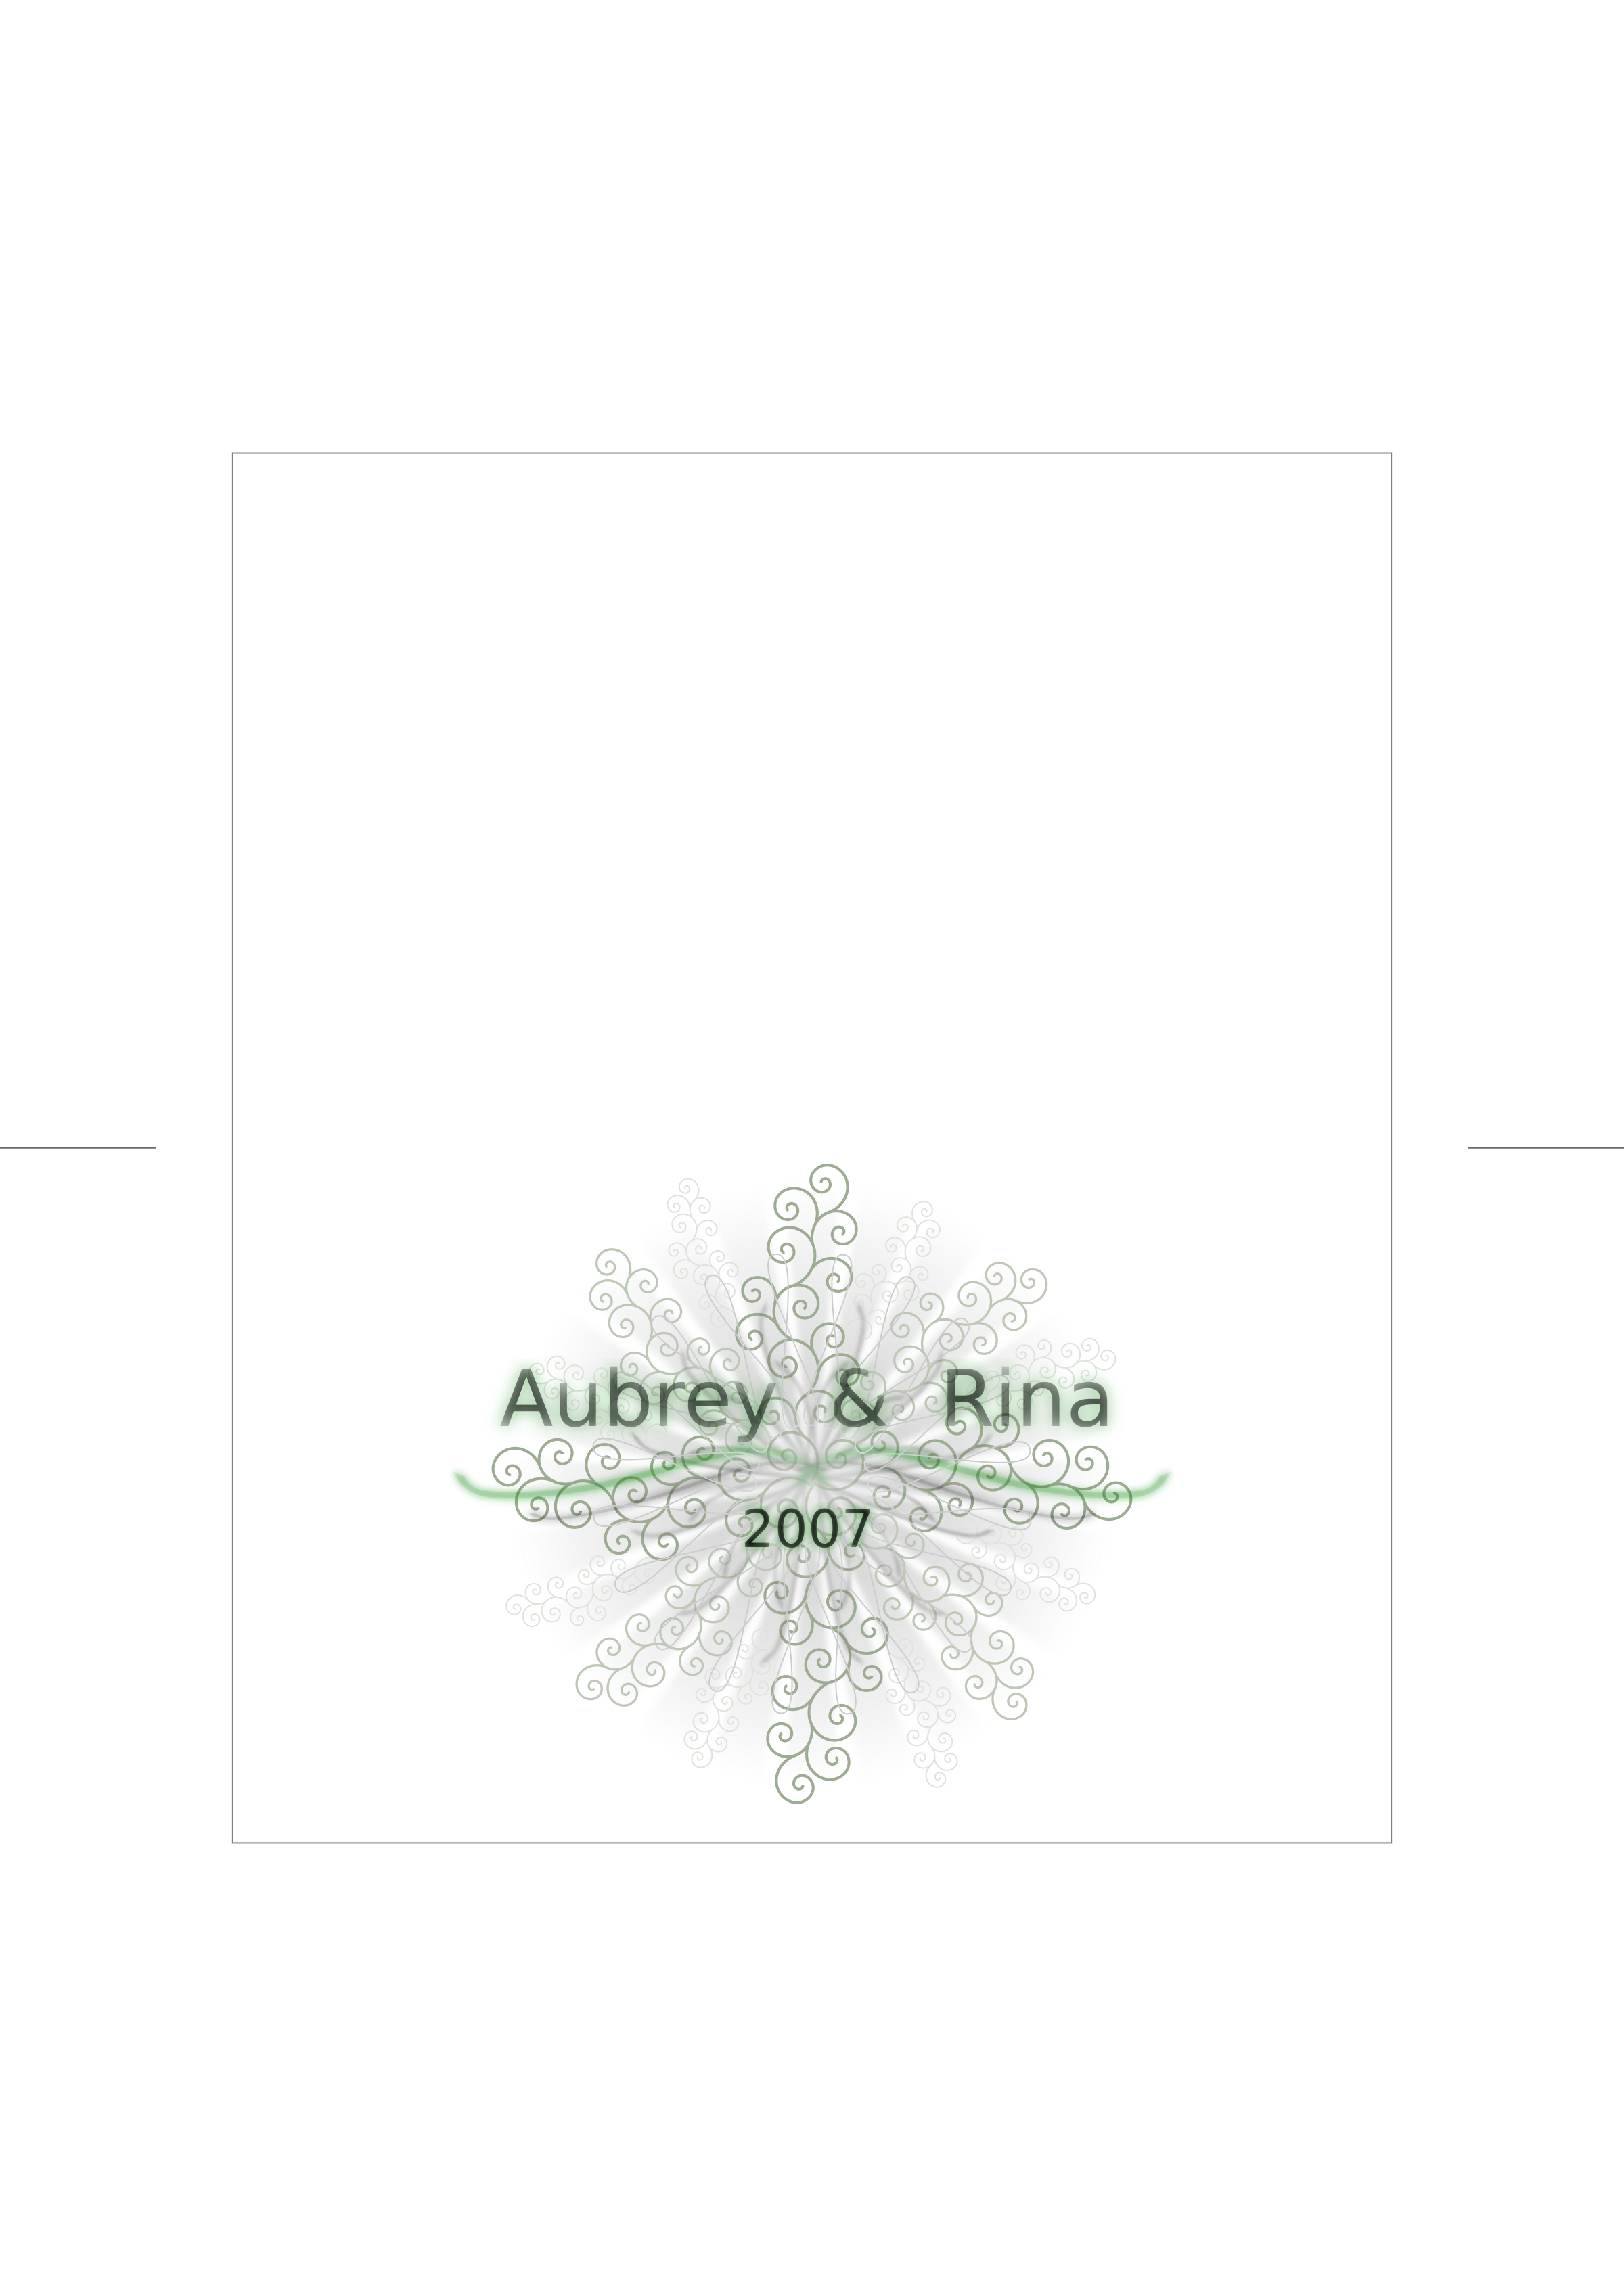 Wedding Invite (outer tracing paper) by apogee